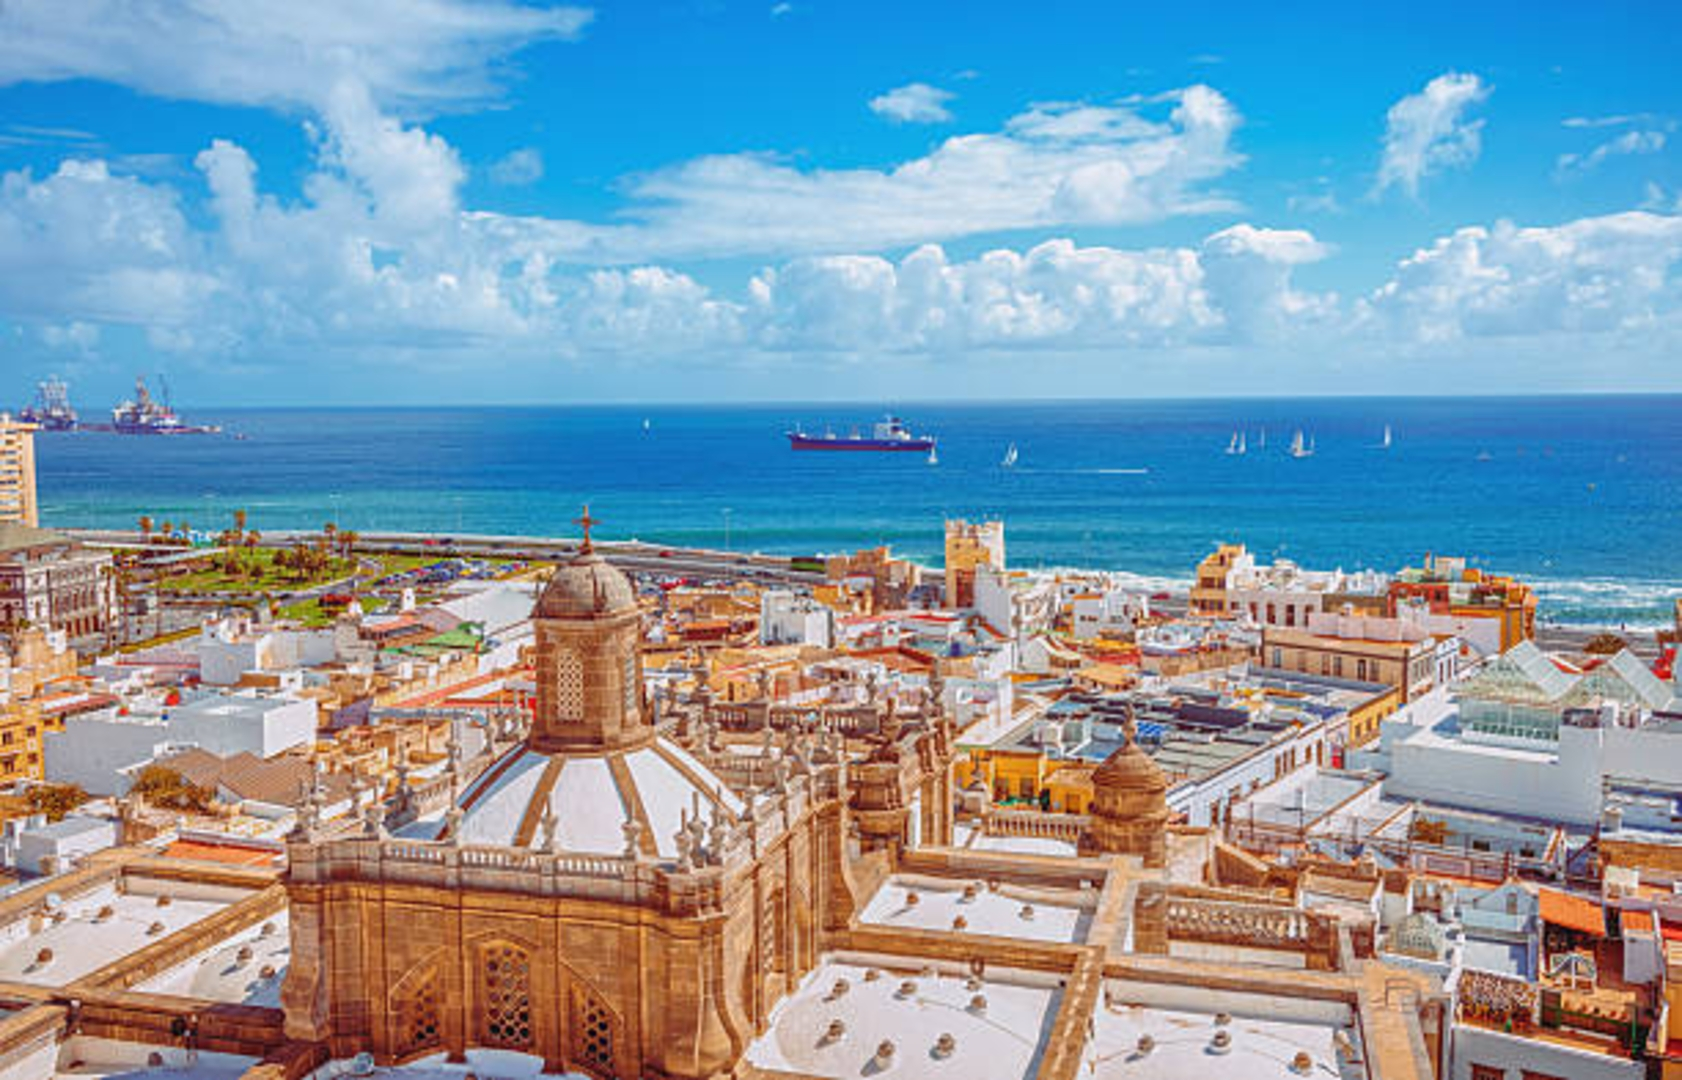 Aerial view over the old town and waterfront of Las Palmas de Gran Canaria.